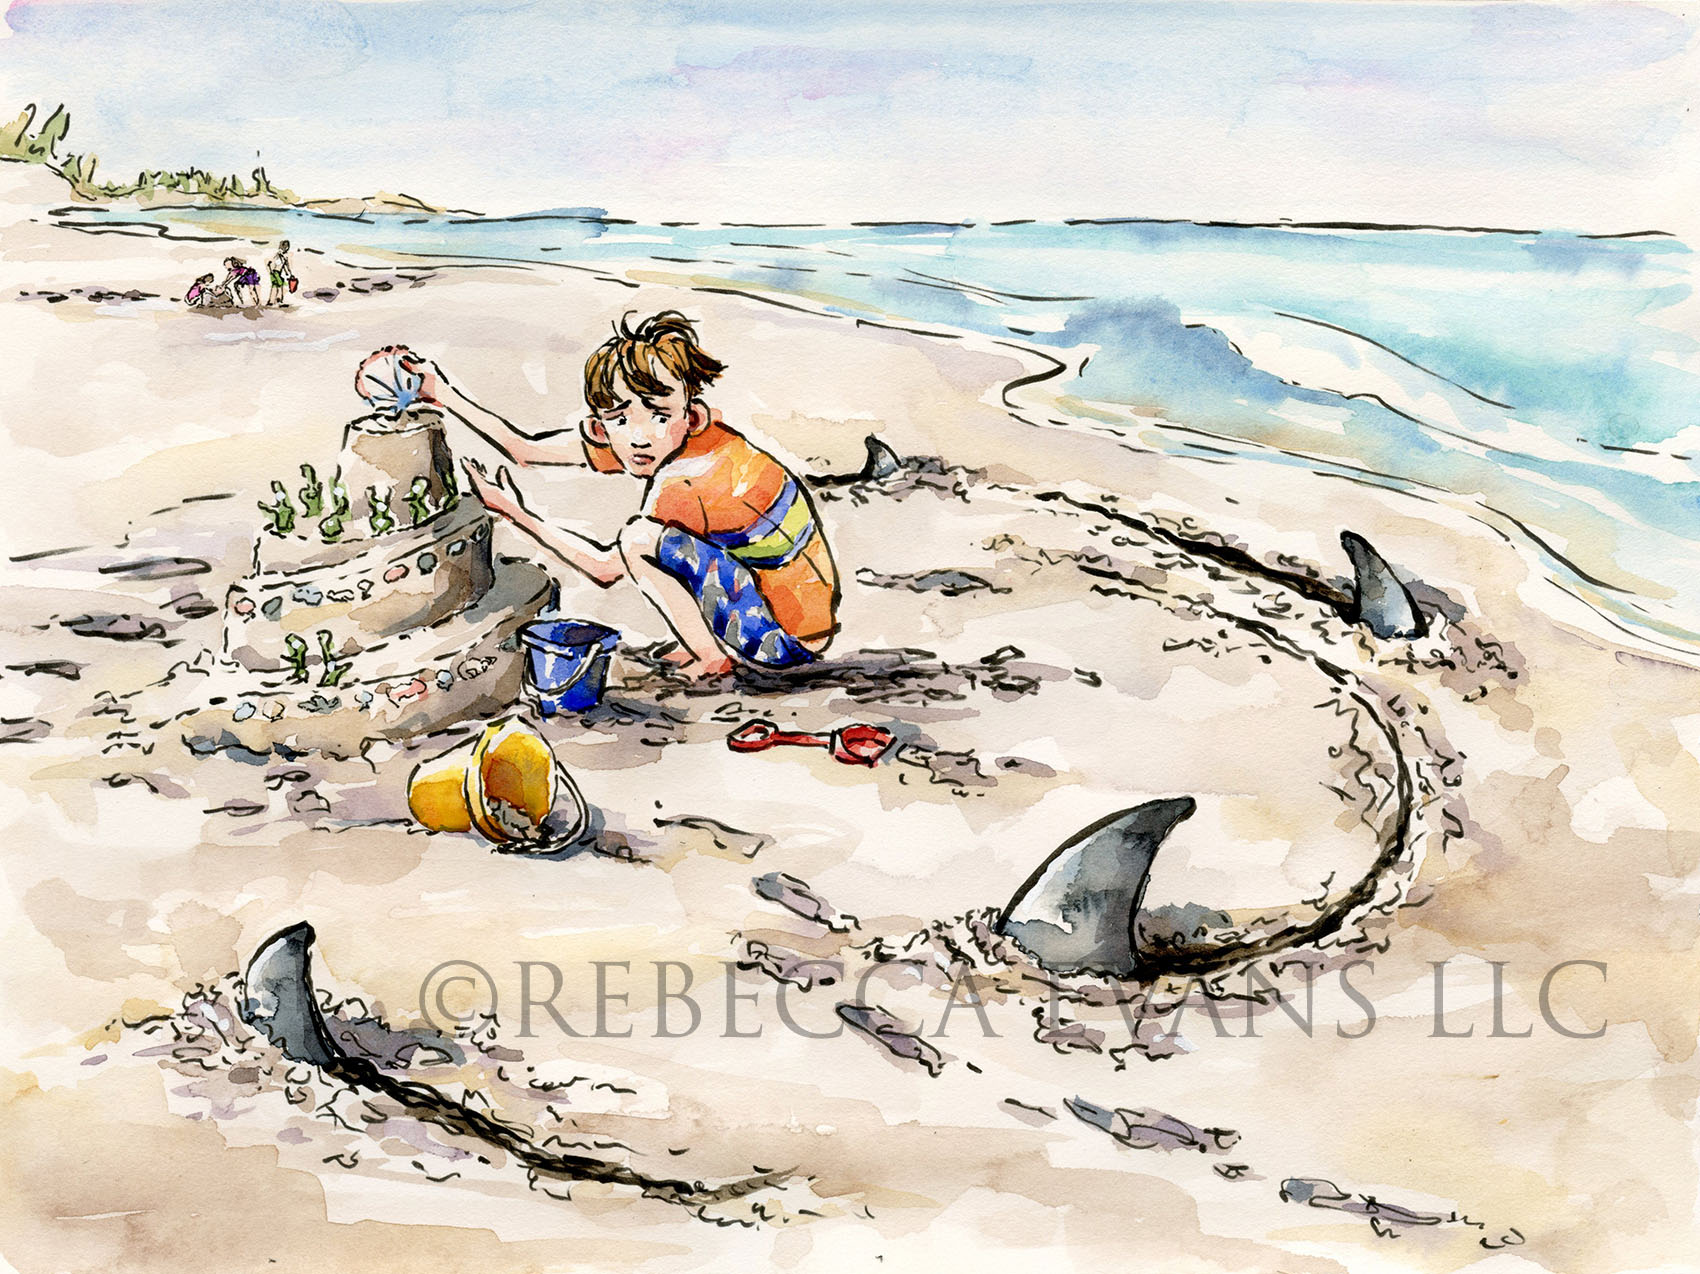 Boy playing at beach, sand sharks